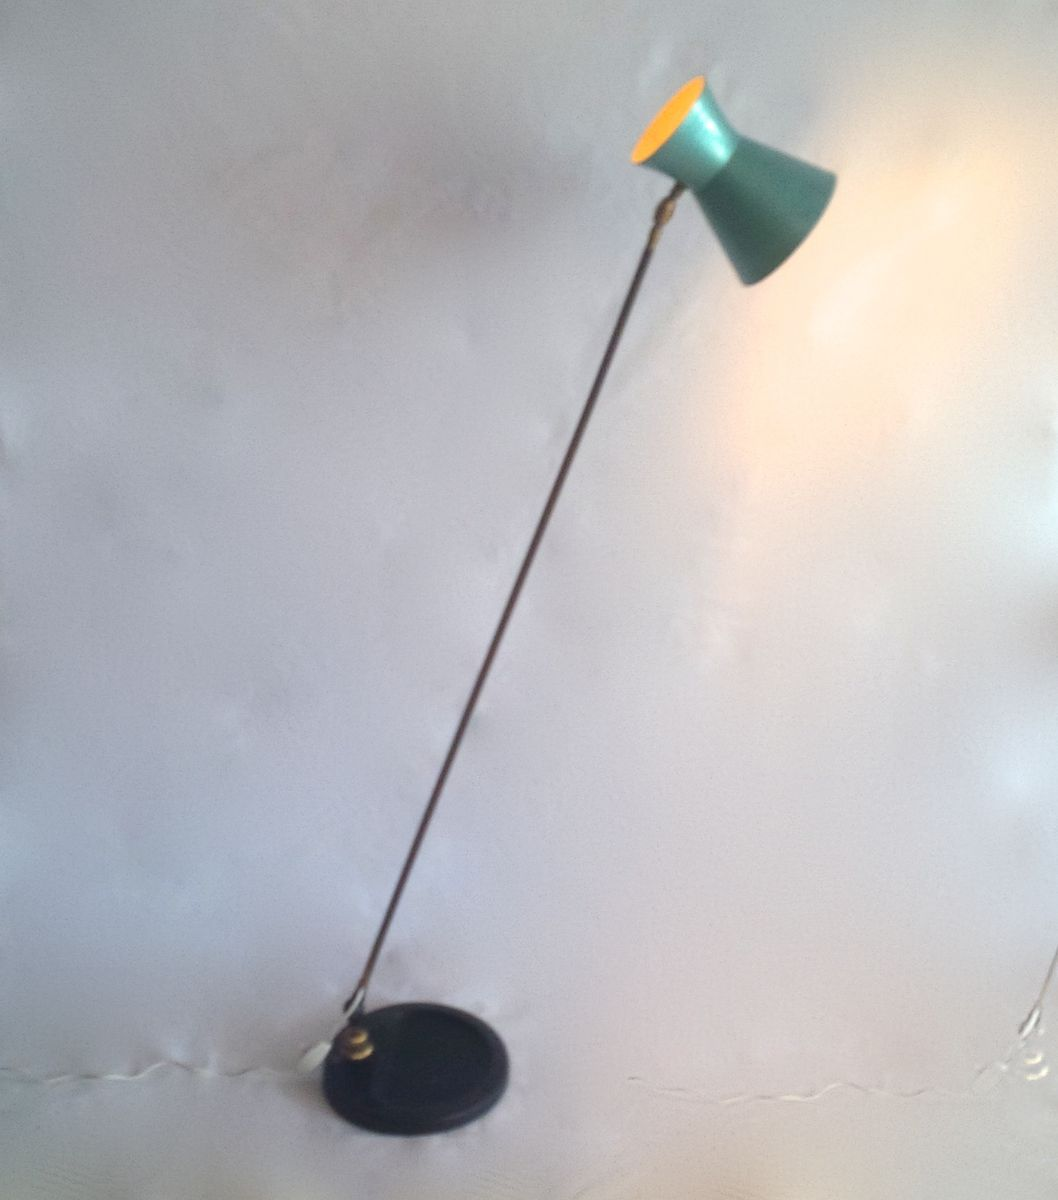 Articulated floor lamp from lumen milano for sale at pamono for Led articulated floor lamp